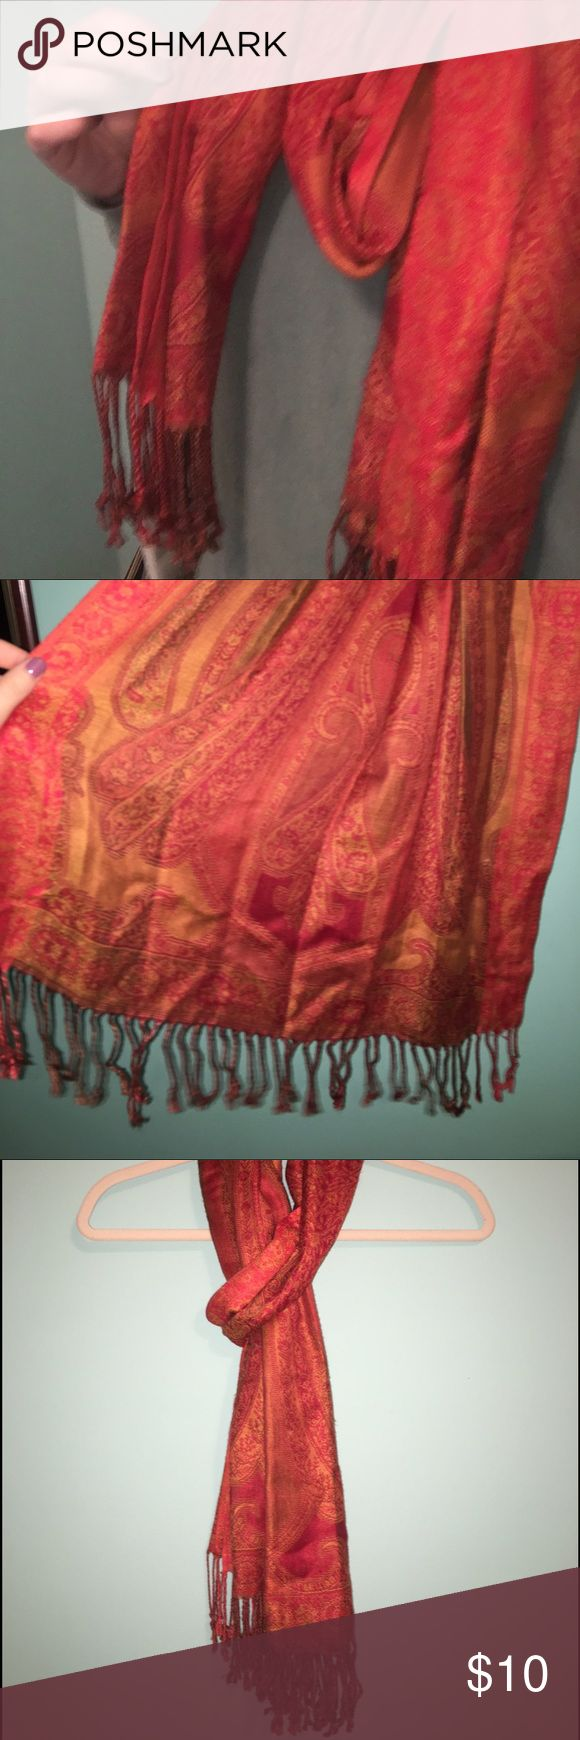 Orange and red pashmina afghan scarf Orange and red patterned scarf ~~ thicker material with a beautiful, intricate pattern Accessories Scarves & Wraps